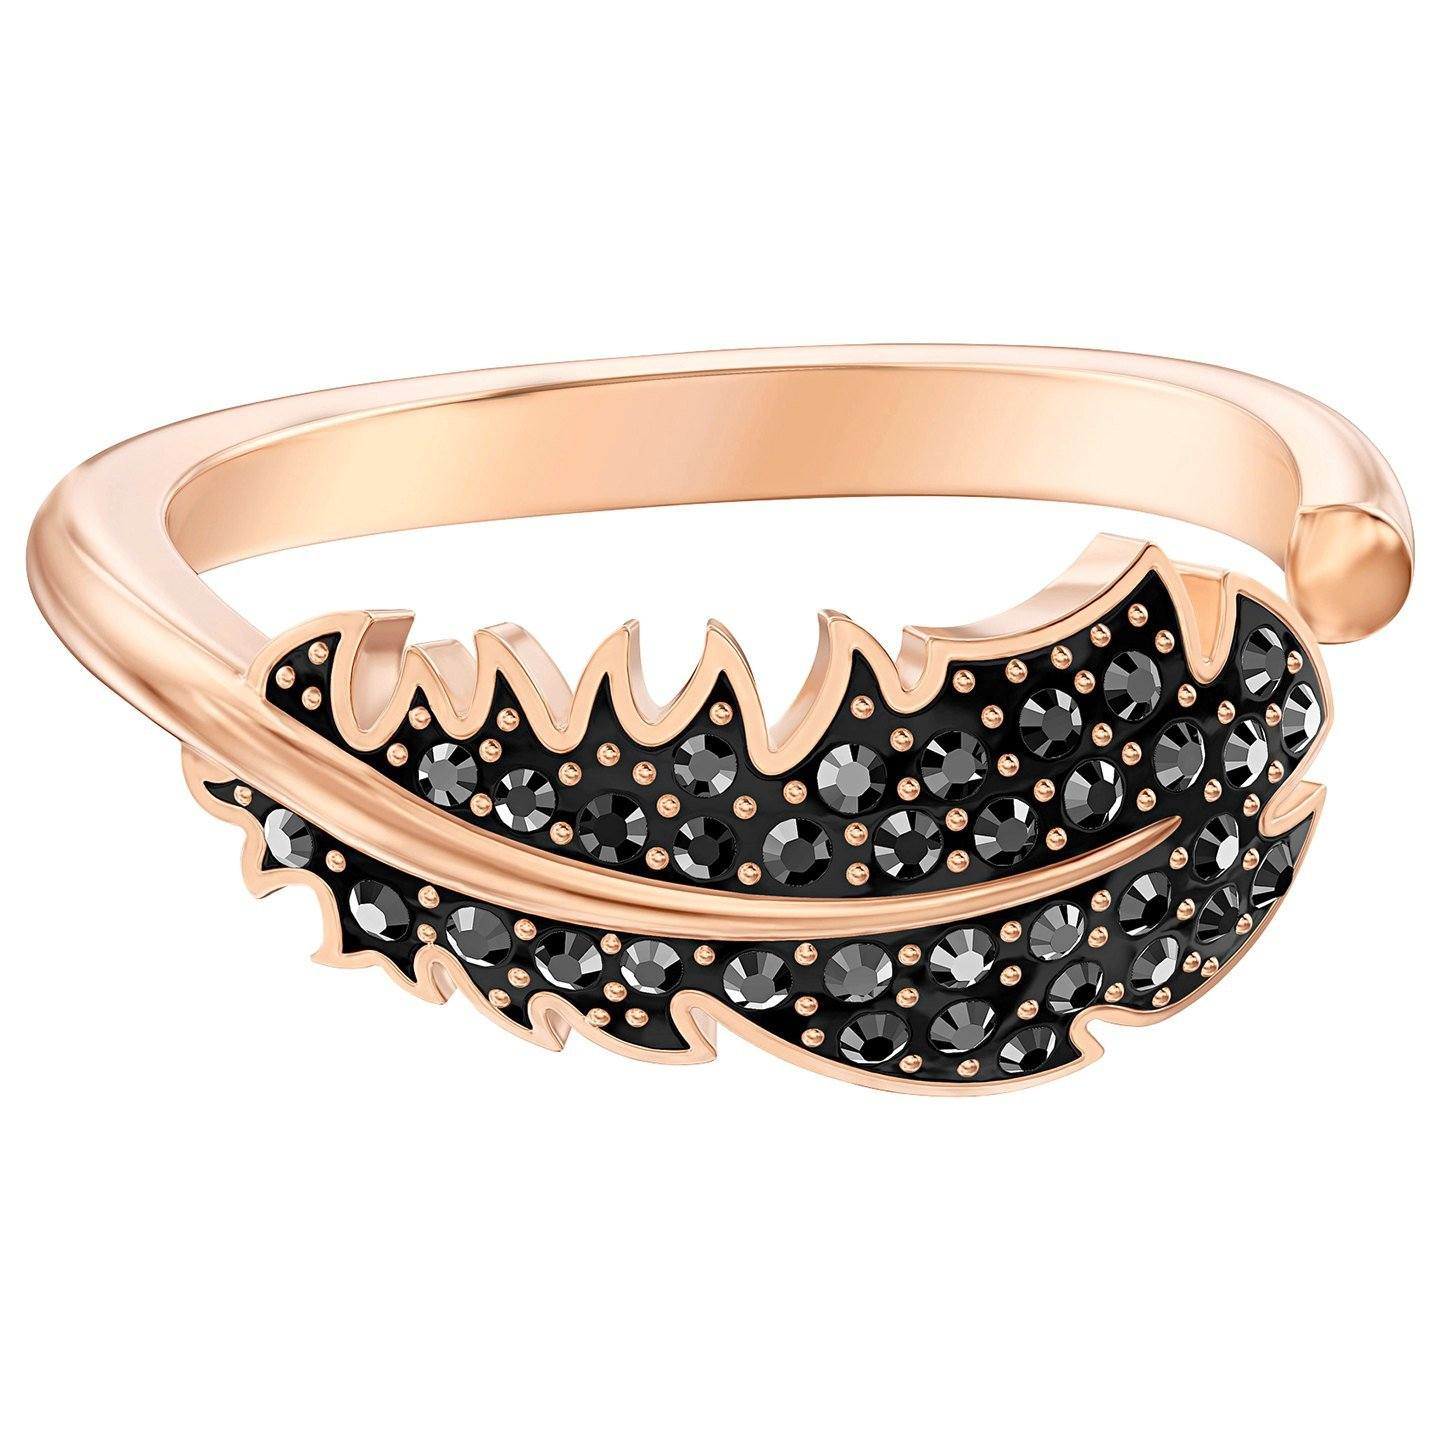 1693ddc9a7ae4 Swarovski Naughty Motif Ring, Black, Rose-gold tone plated, Size 58, 5509681